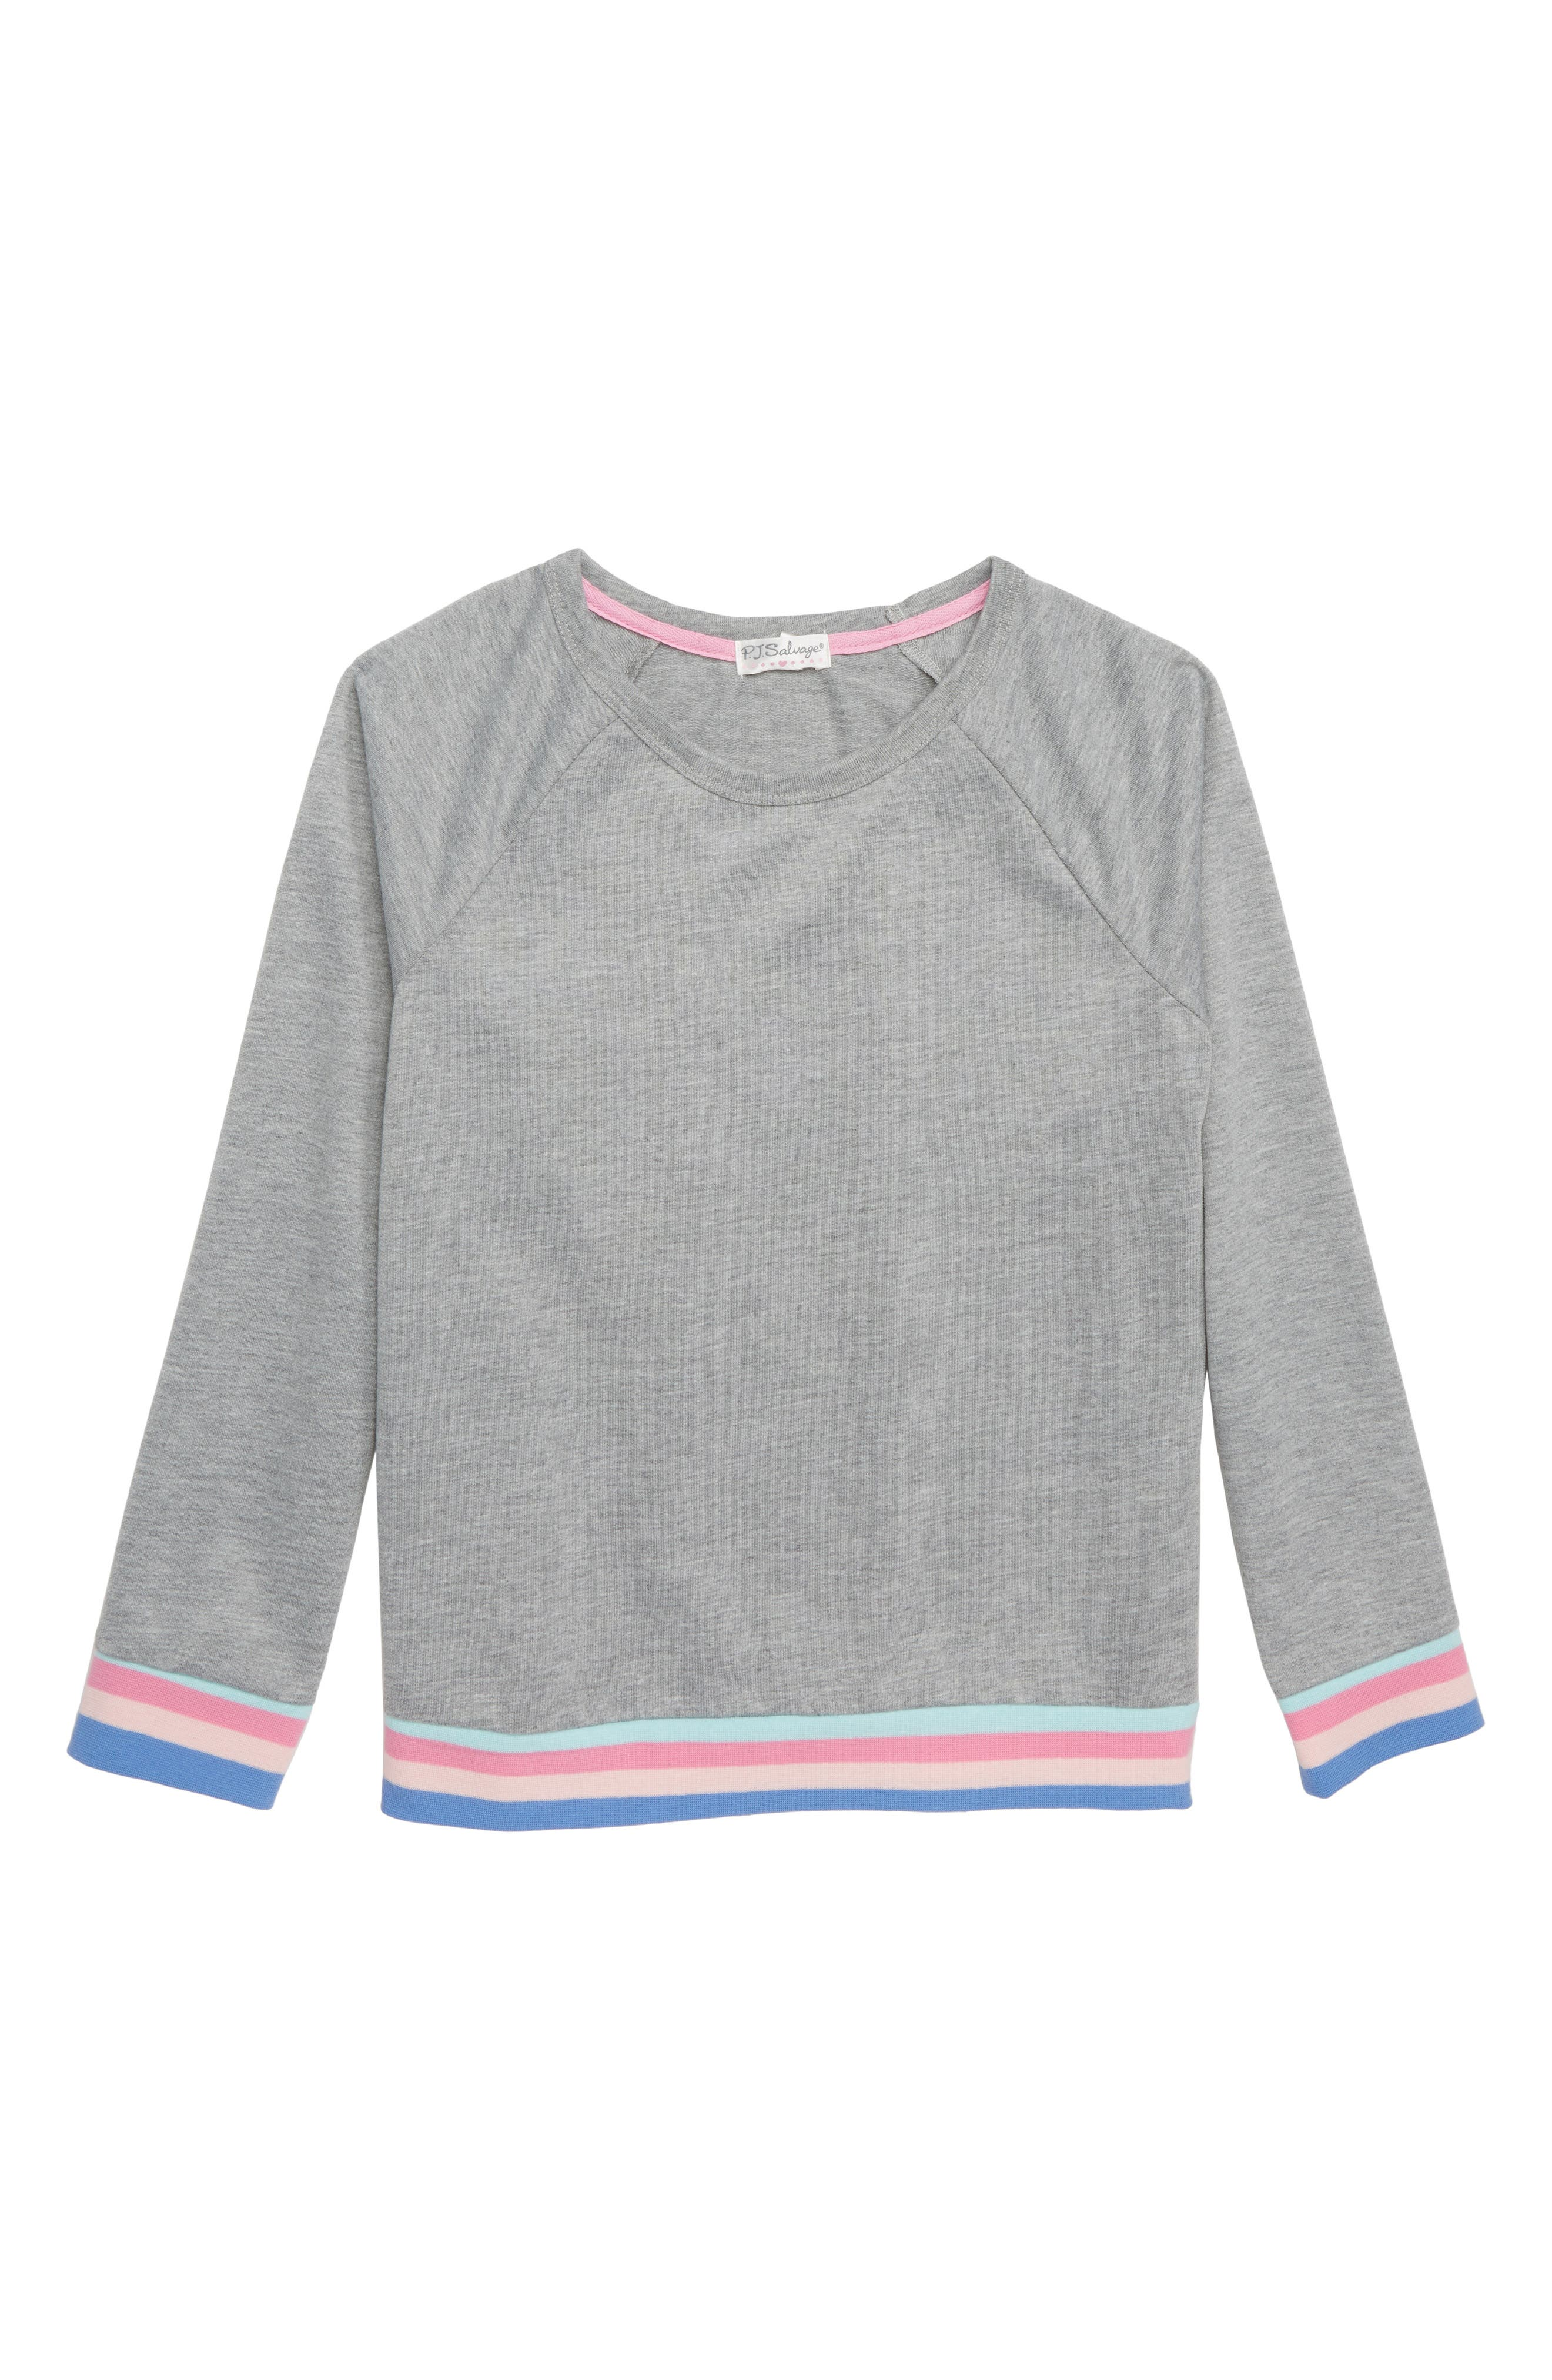 Girl Power Pajama Top,                         Main,                         color, H GREY